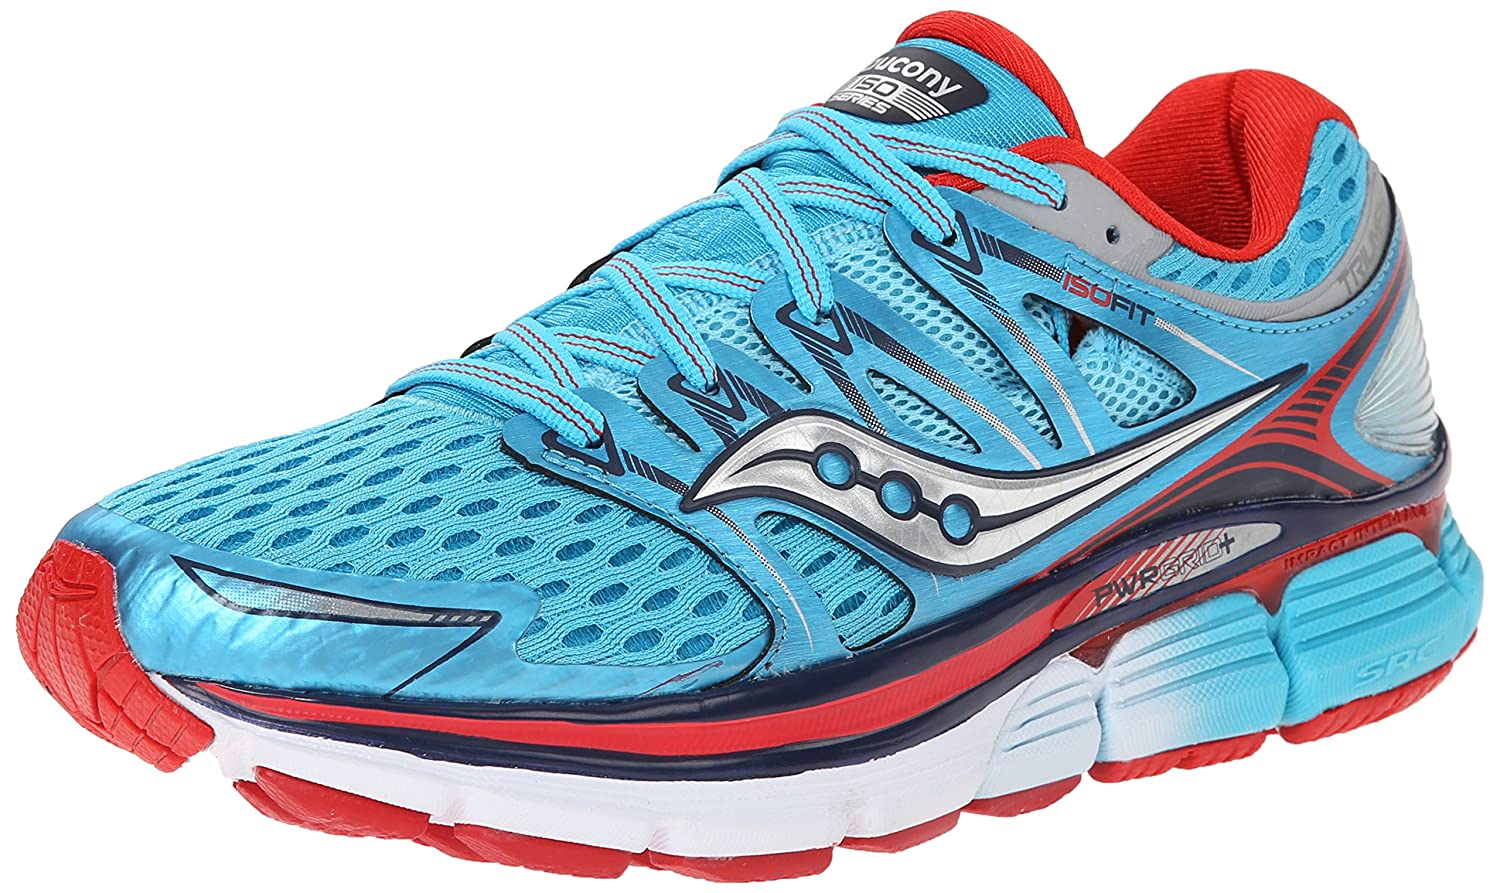 Saucony Women's Triumph ISO Running Shoe B00PIVS6KW 6.5 B(M) US|Blue/Red